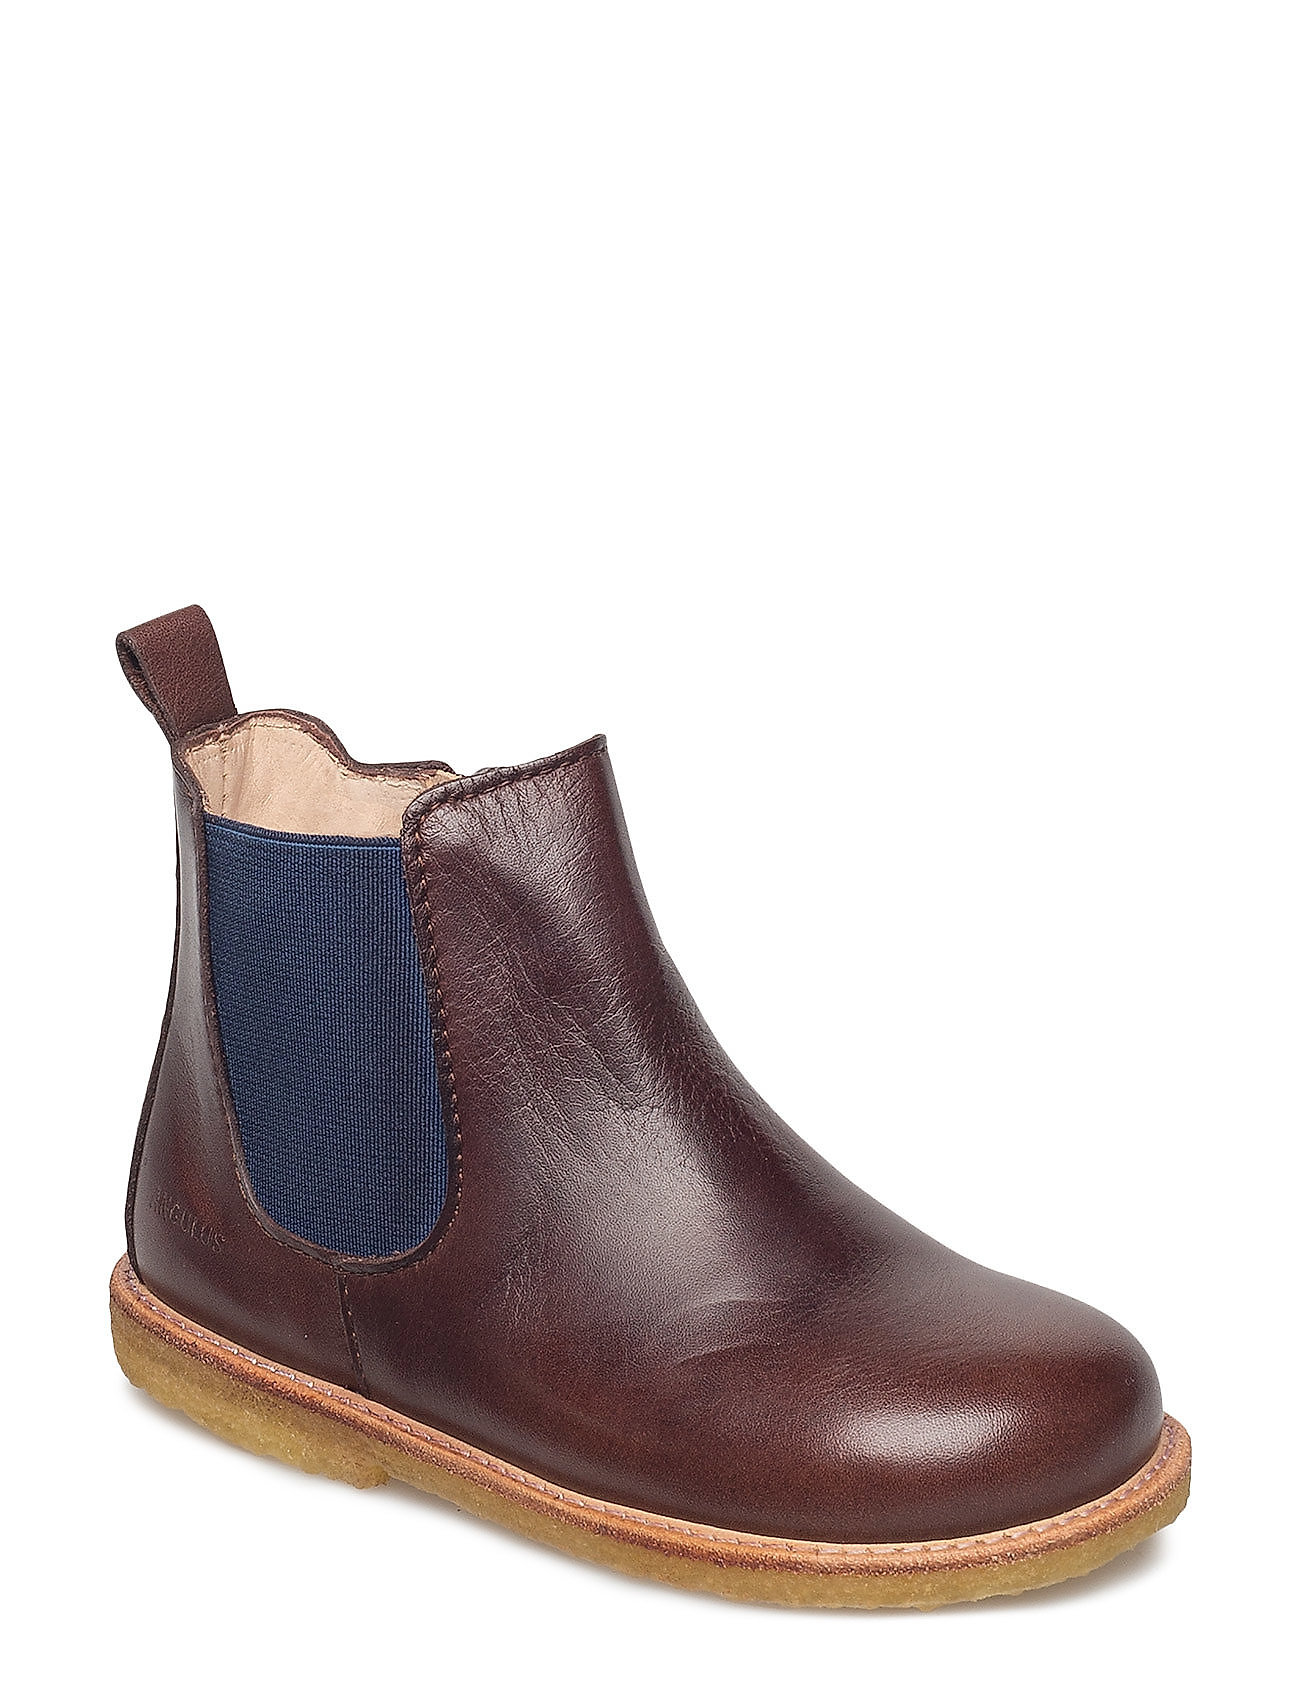 ANGULUS Booties - flat - with zipper - 1562/016 ANGULUS BROWN/BLUE